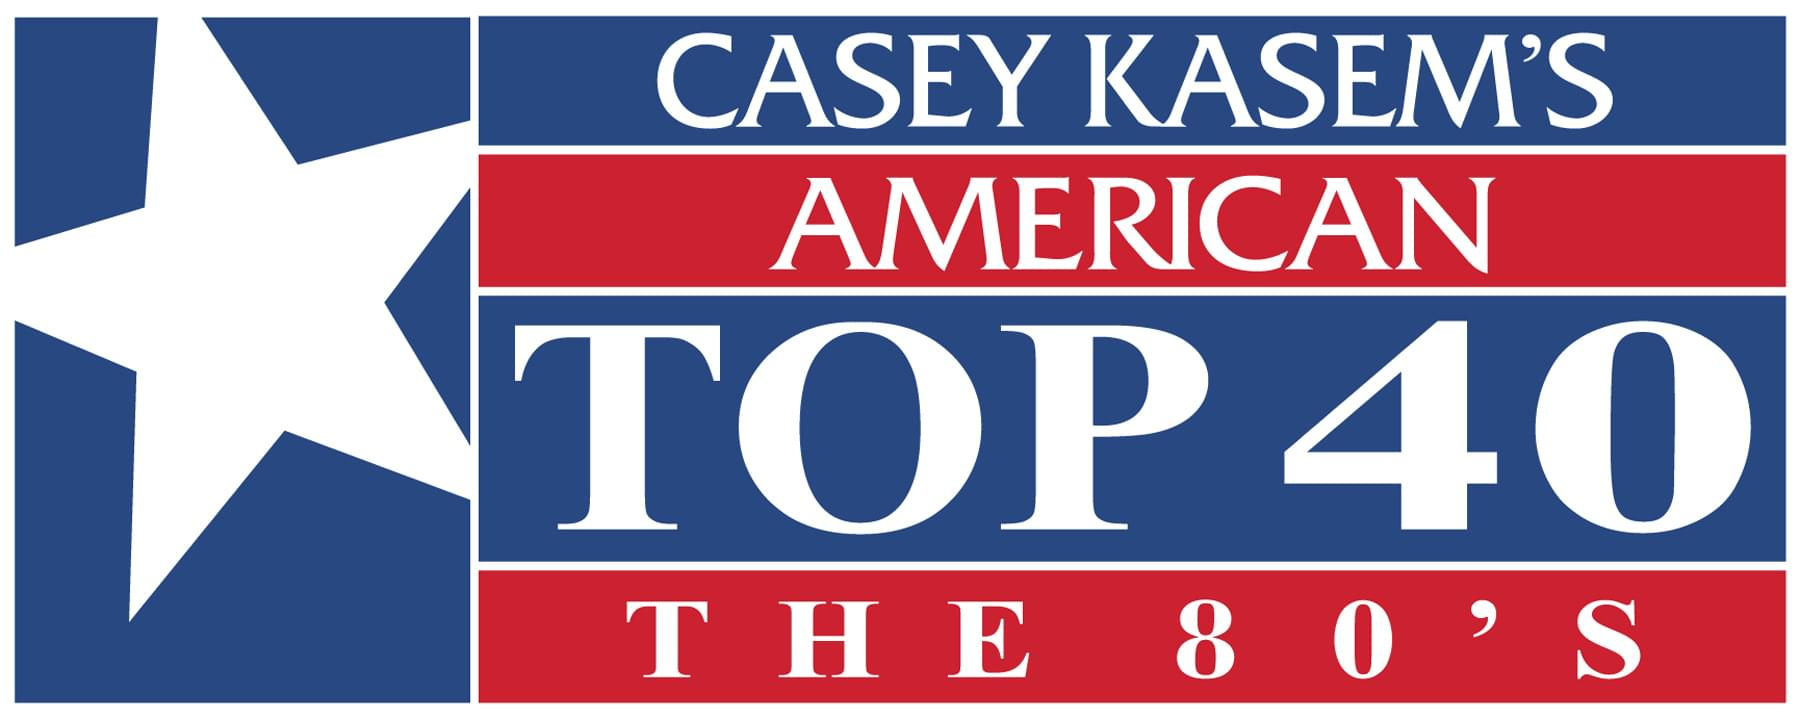 Casey Kasem's American Top 40: The 80's | KWIC-FM